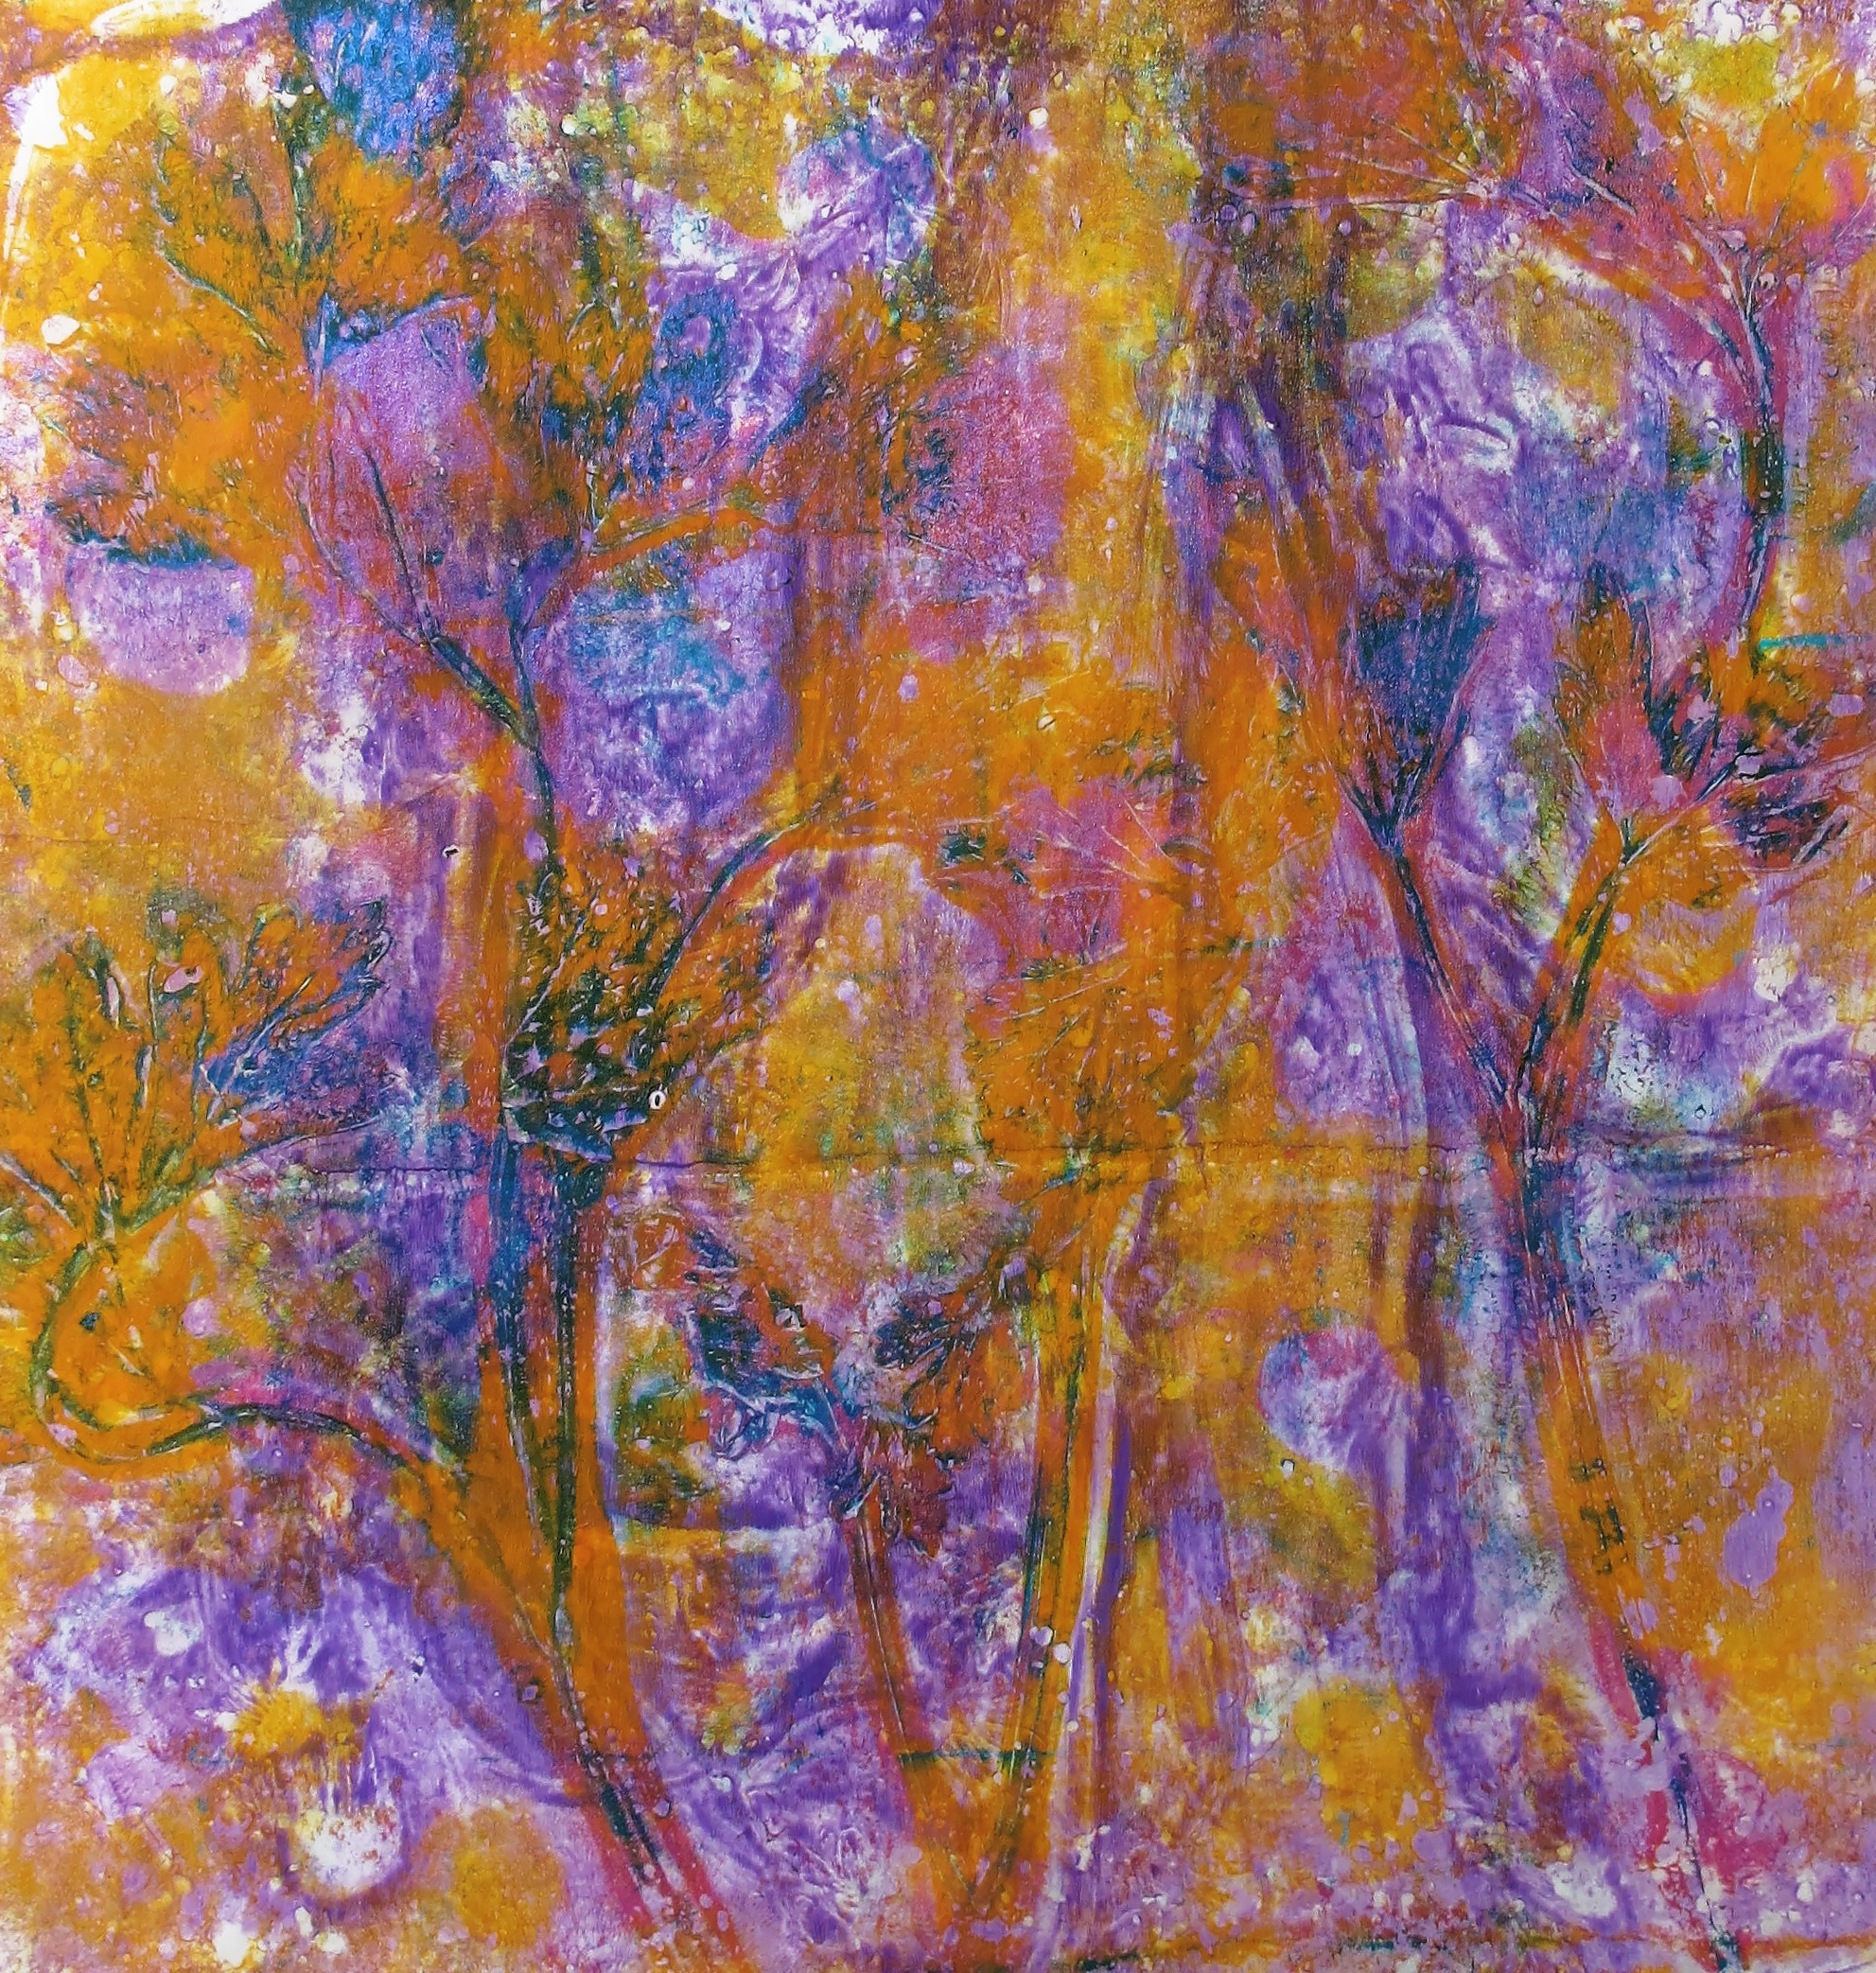 From the abstract healing series